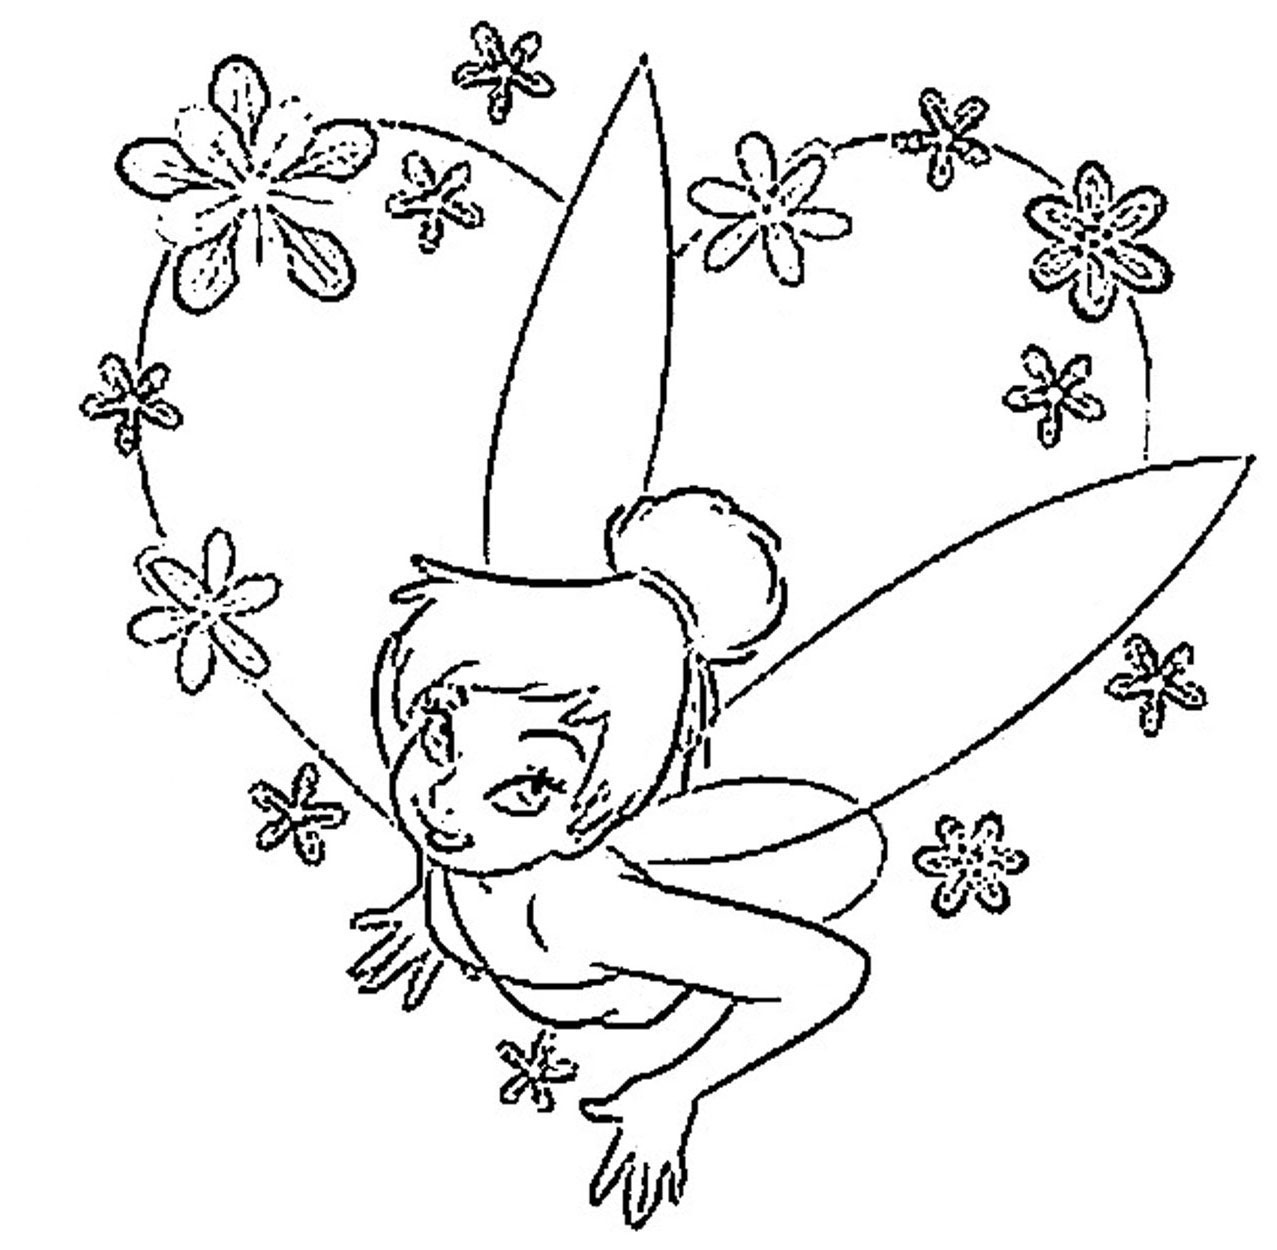 tinkerbell coloring pages kids - photo#22